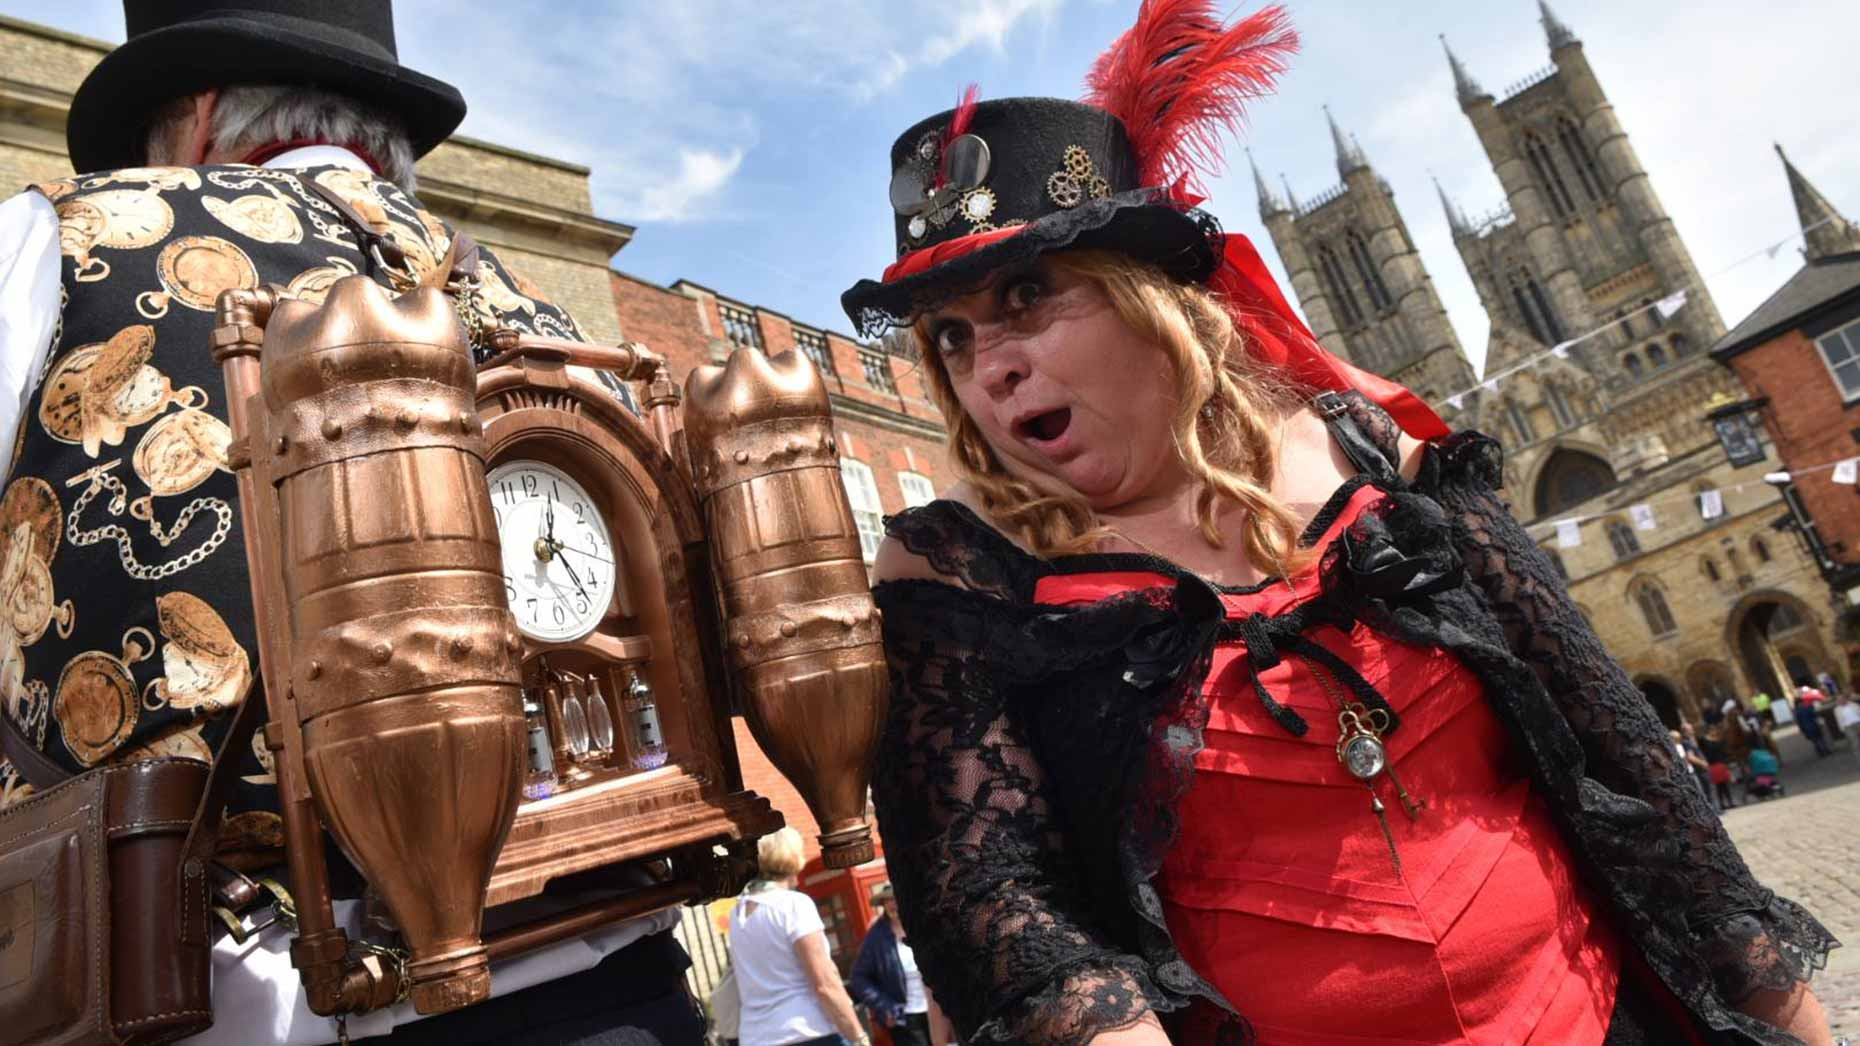 World-renowned Asylum Steampunk Festival returns to ...